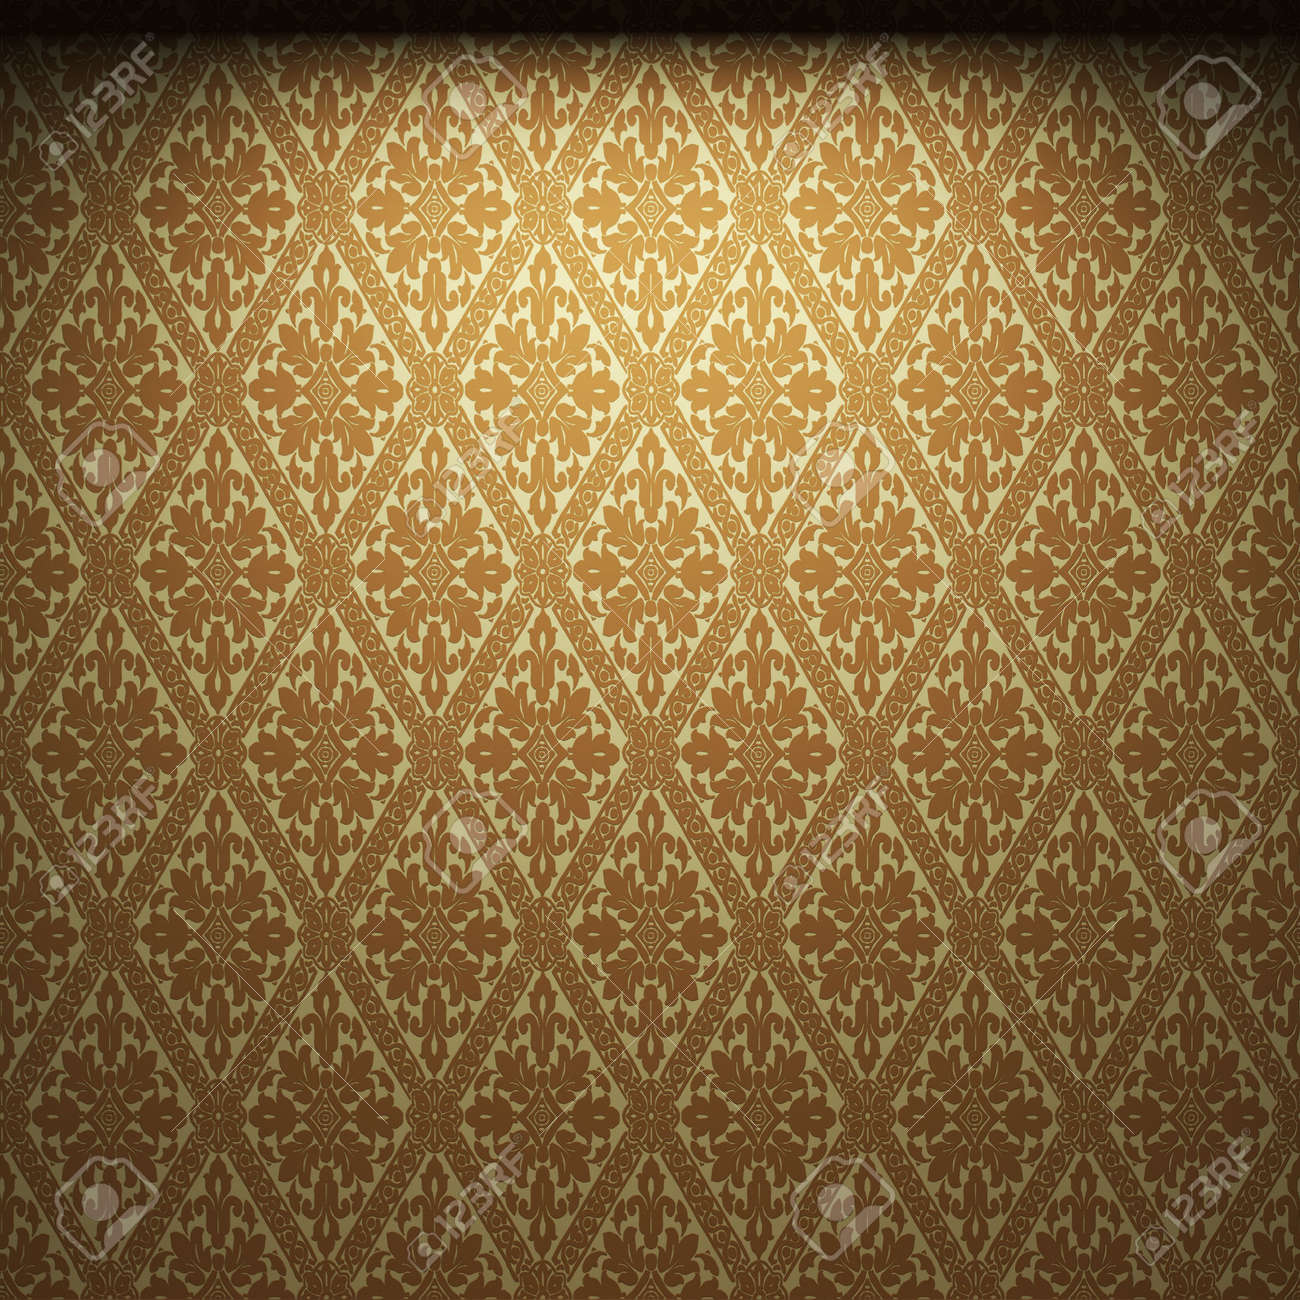 illuminated fabric wallpaper Stock Photo - 6832582